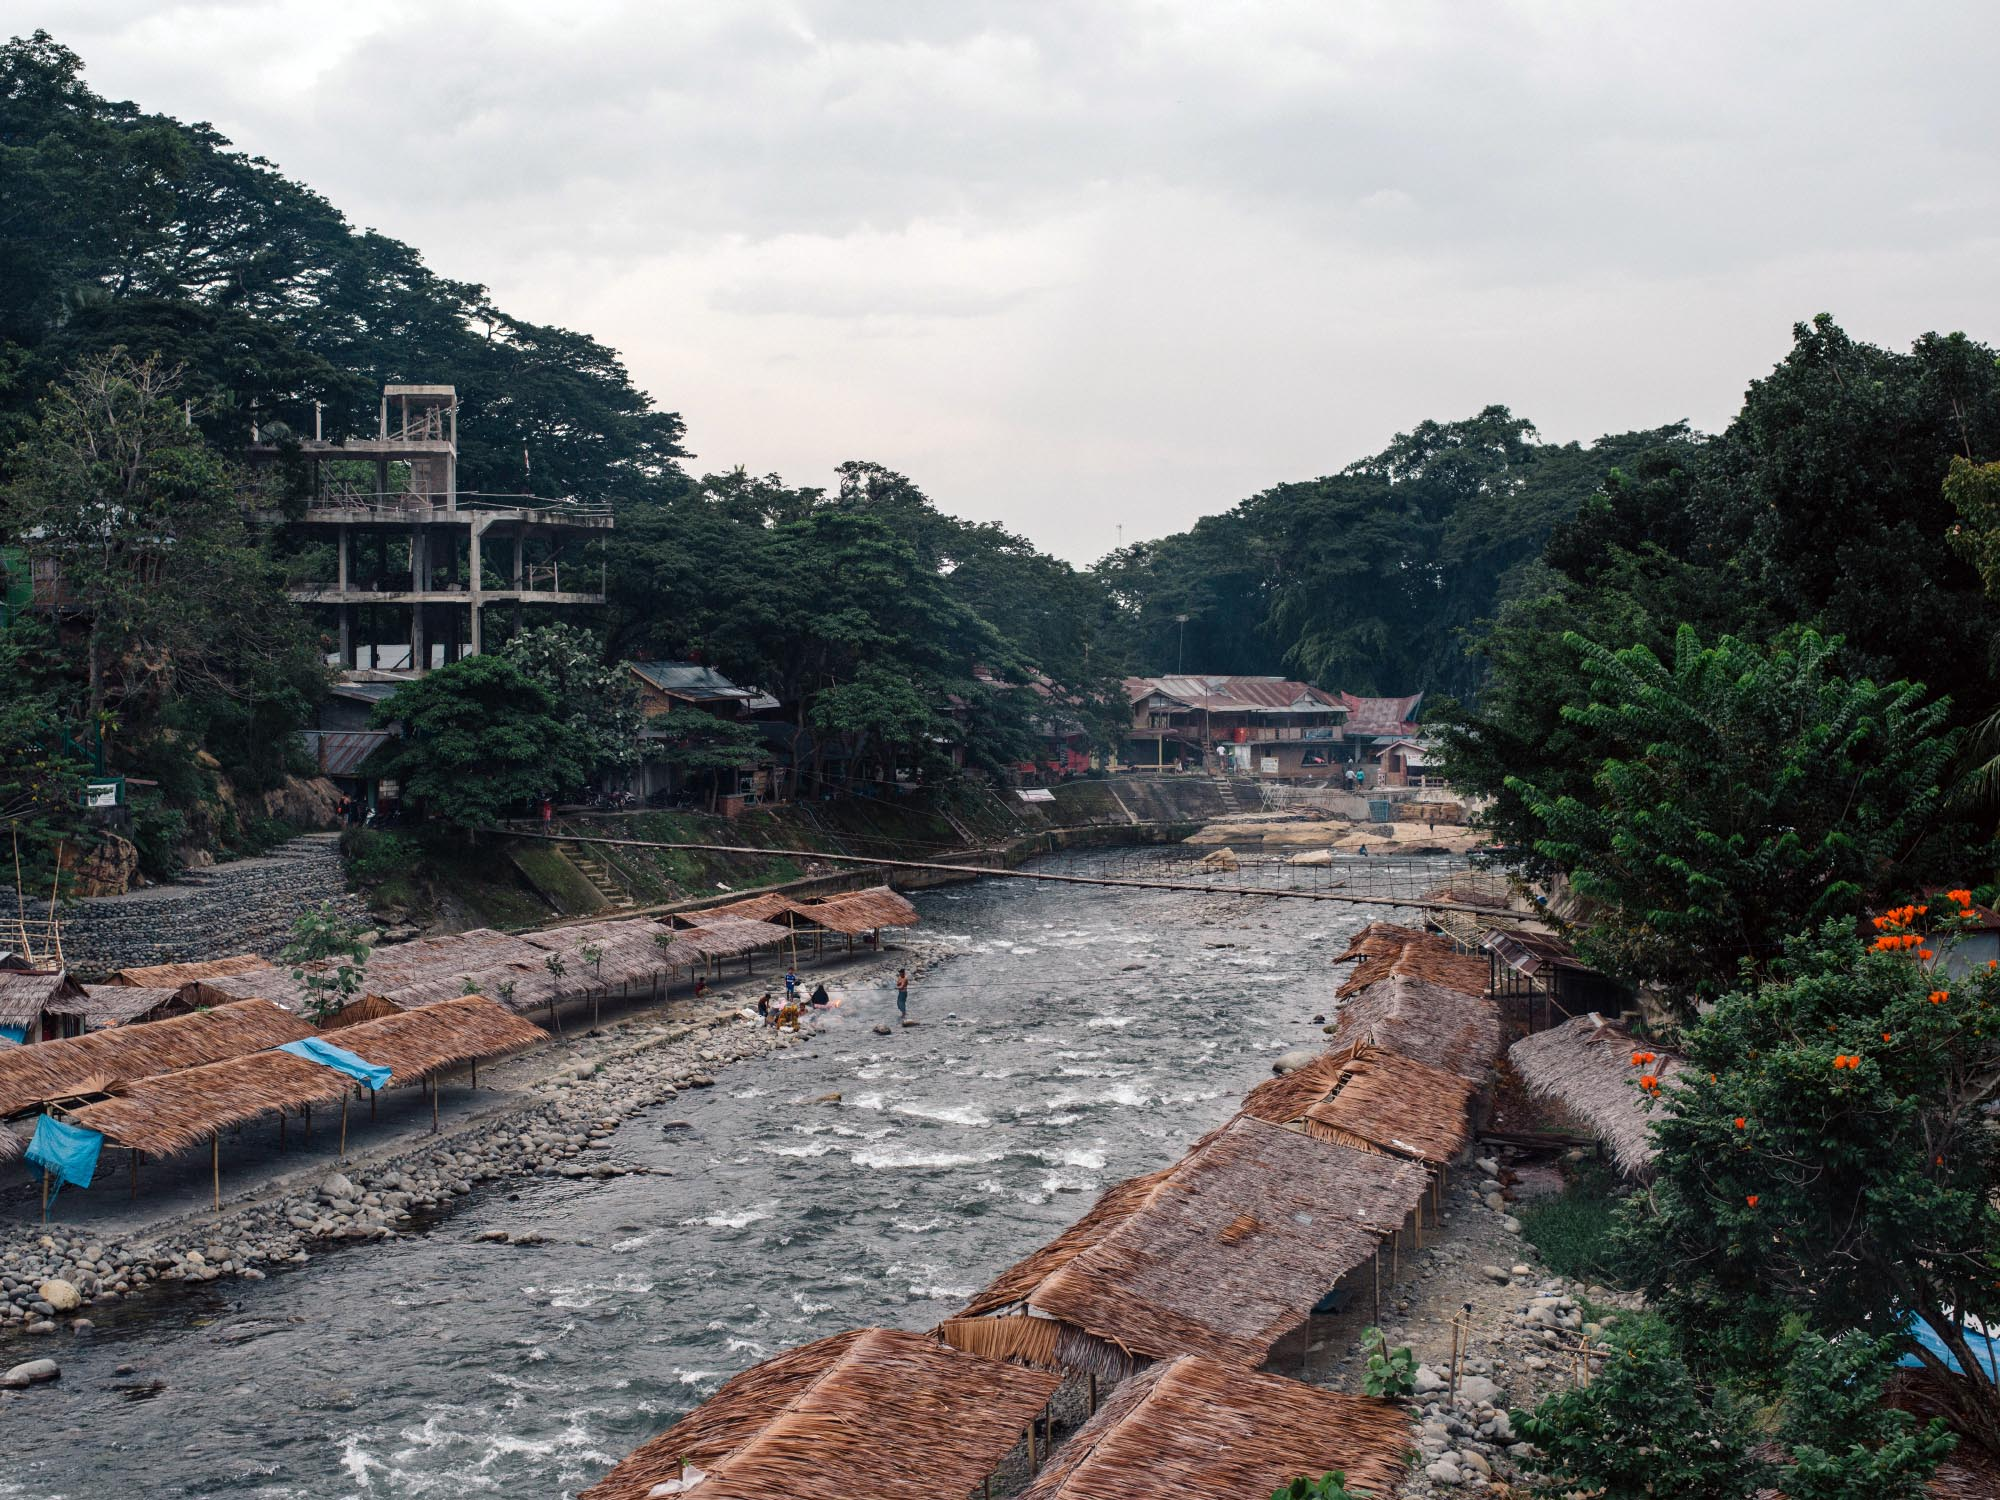 View from a bridge in Bukit Lawang.